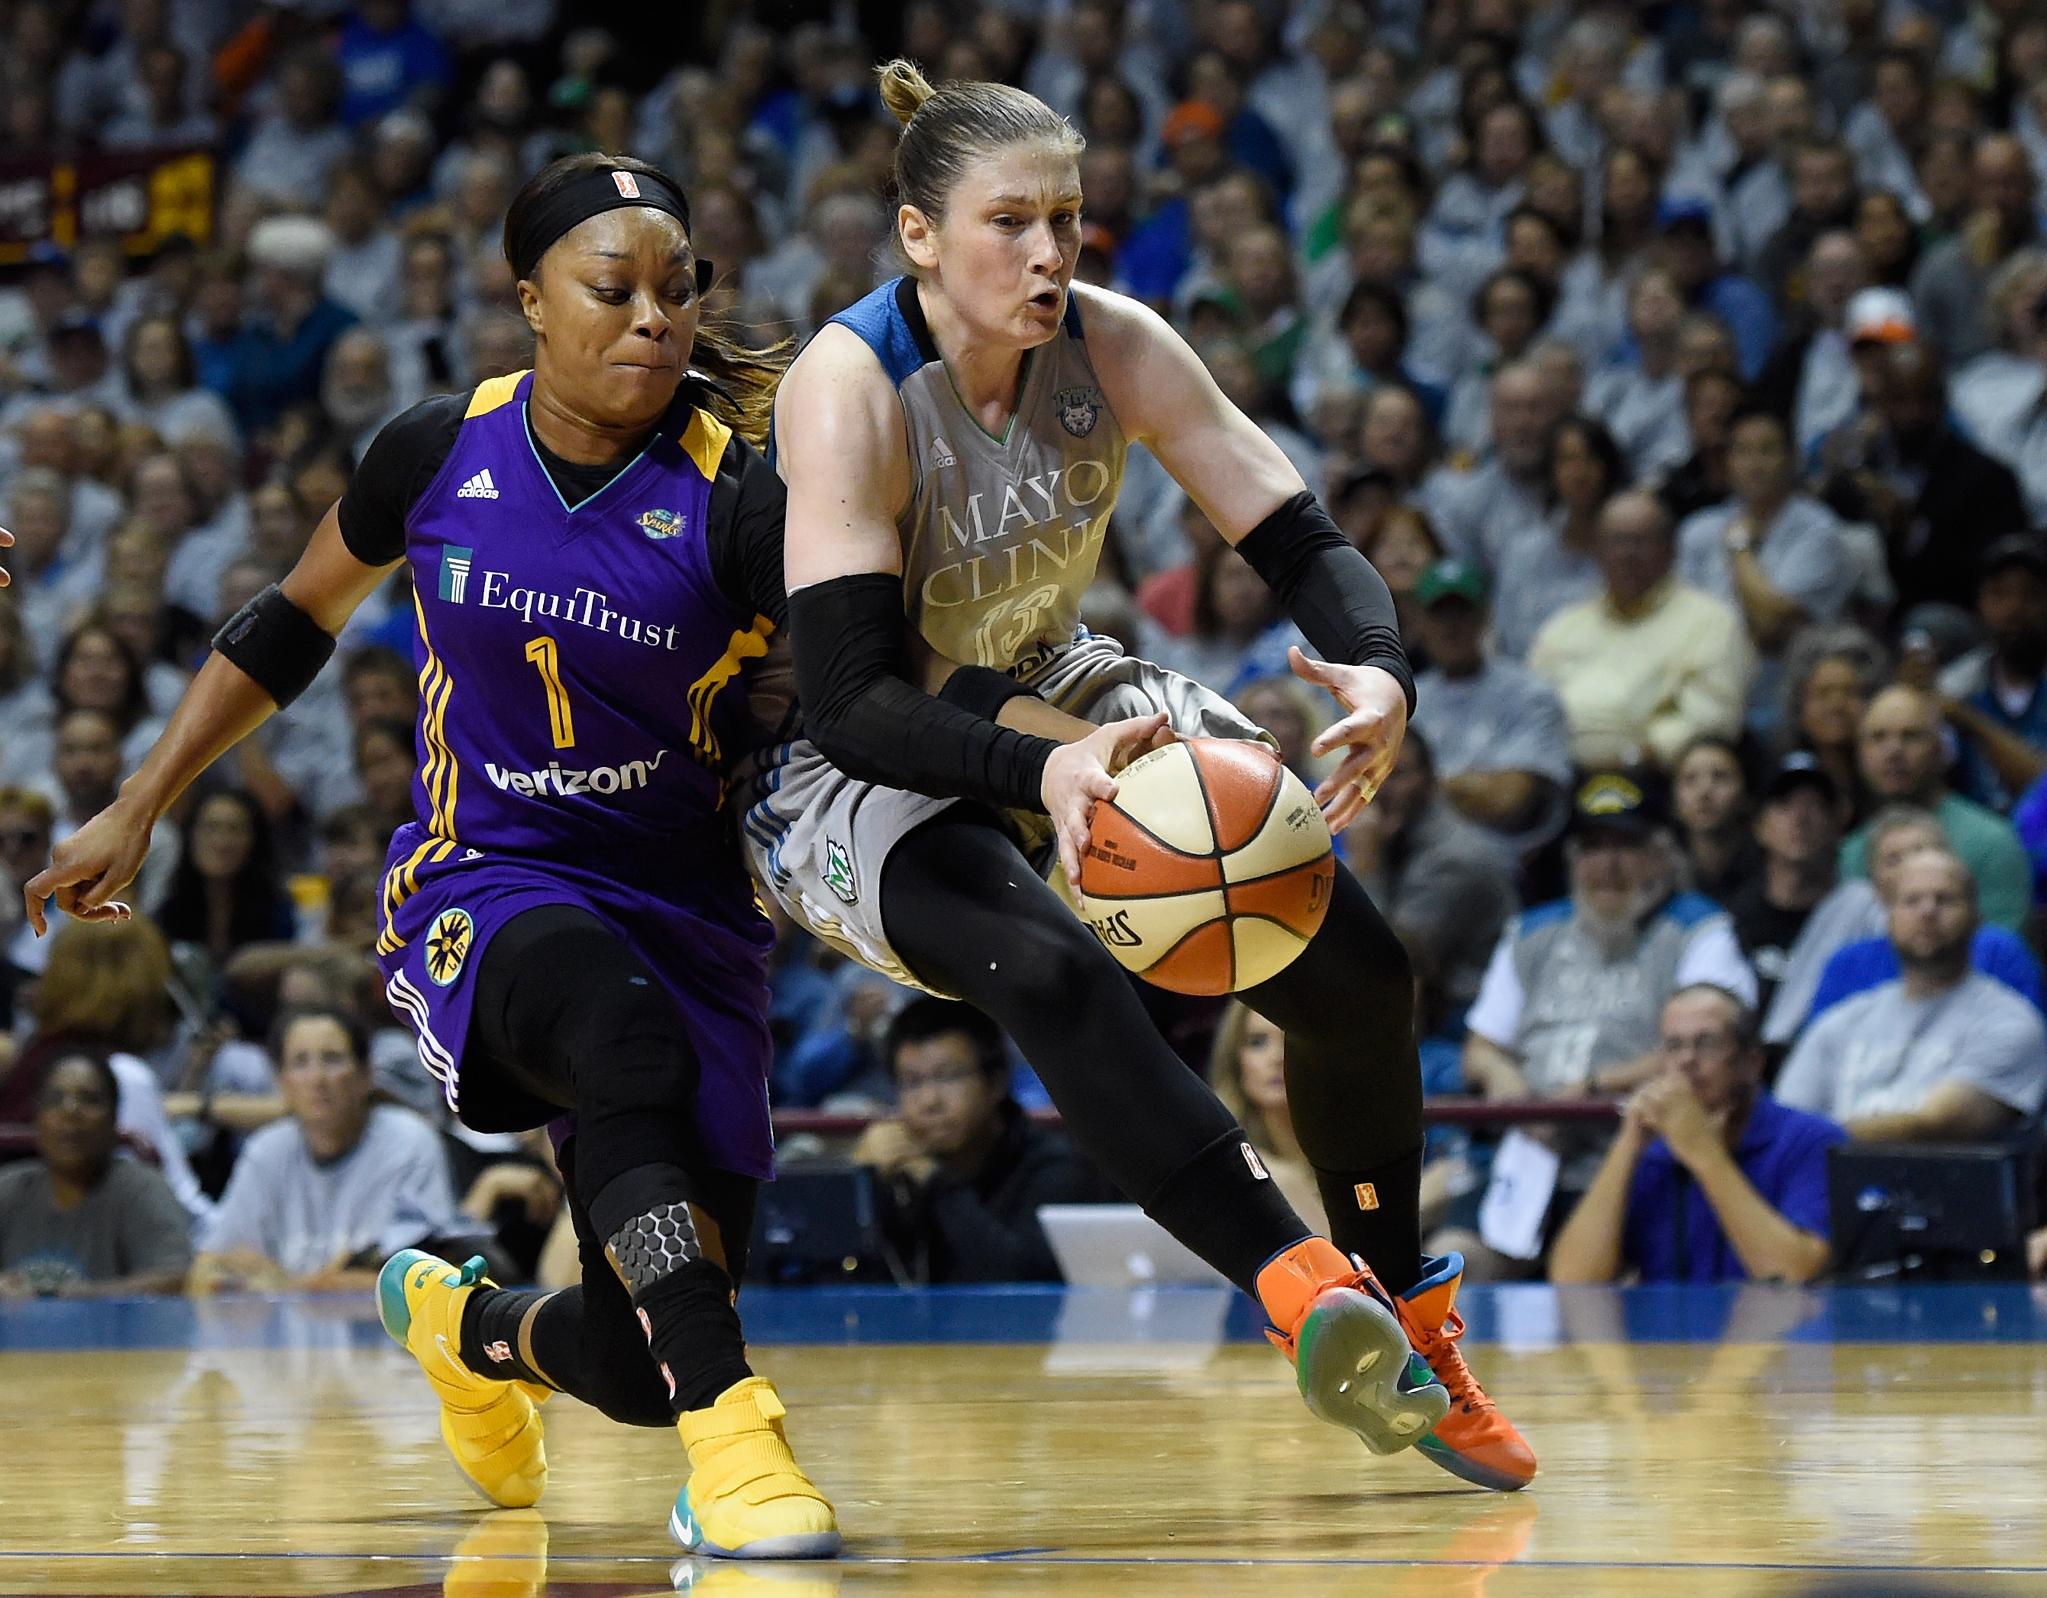 20 minutes down in winner-take-all Game 5!   The Lynx lead the Sparks 41-35 at halftime. https://t.co/7GKy7aNaWa